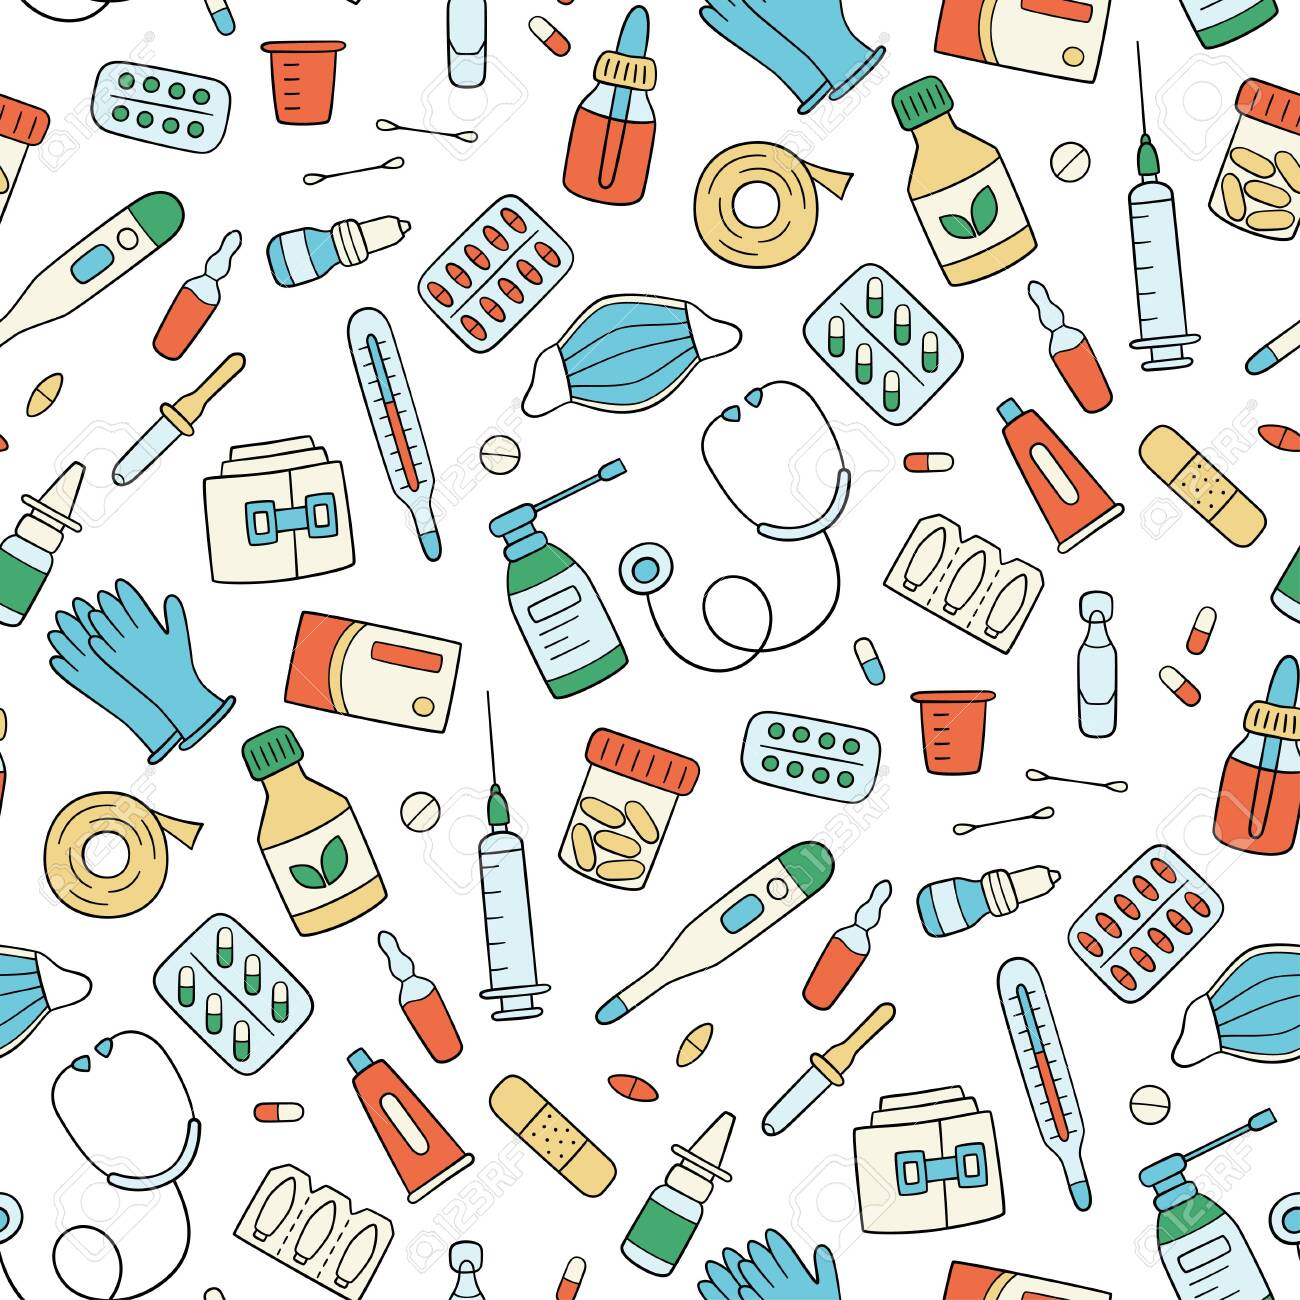 Meds, drugs, pills, bottles and health care medical elements. Color seamless pattern. Vector illustration in doodle style on white background - 147428747